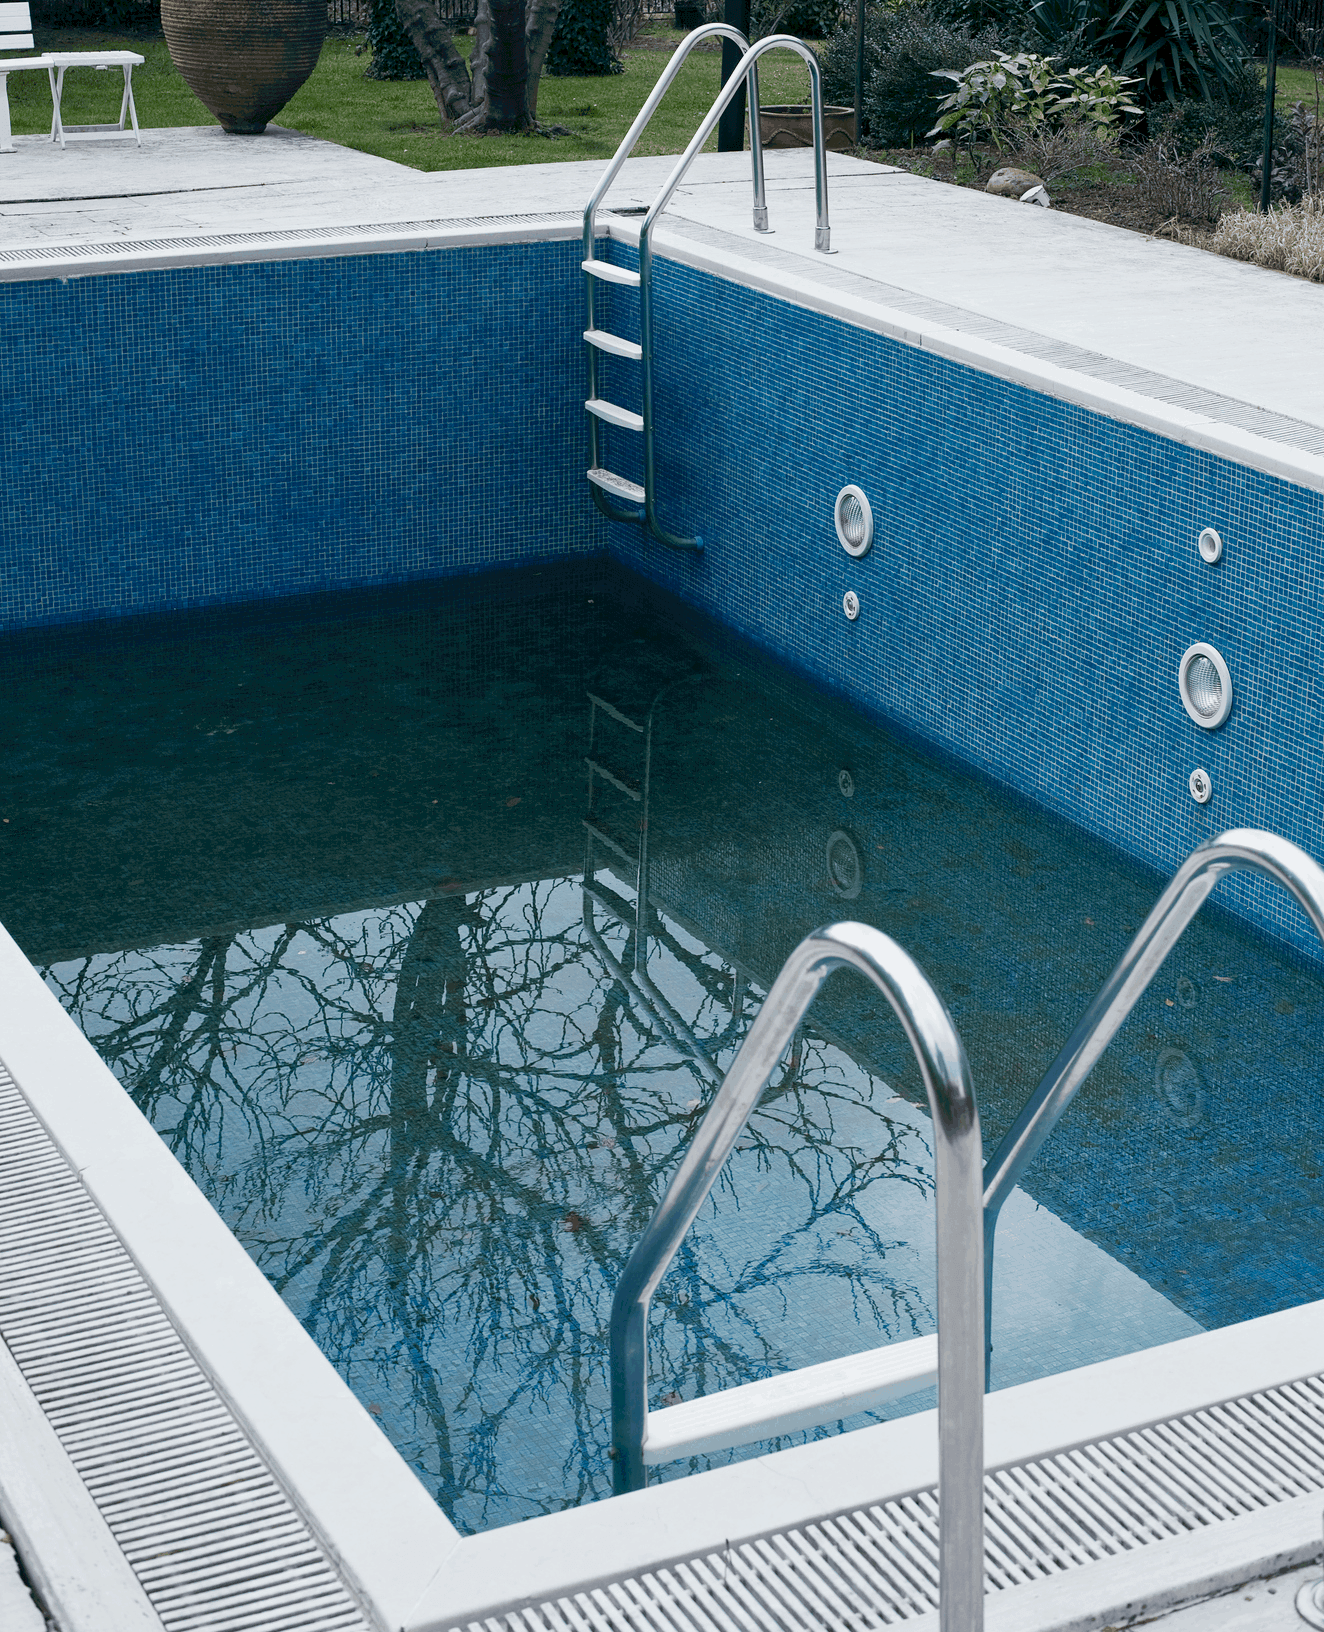 Pool leak detection Chelsea Heights